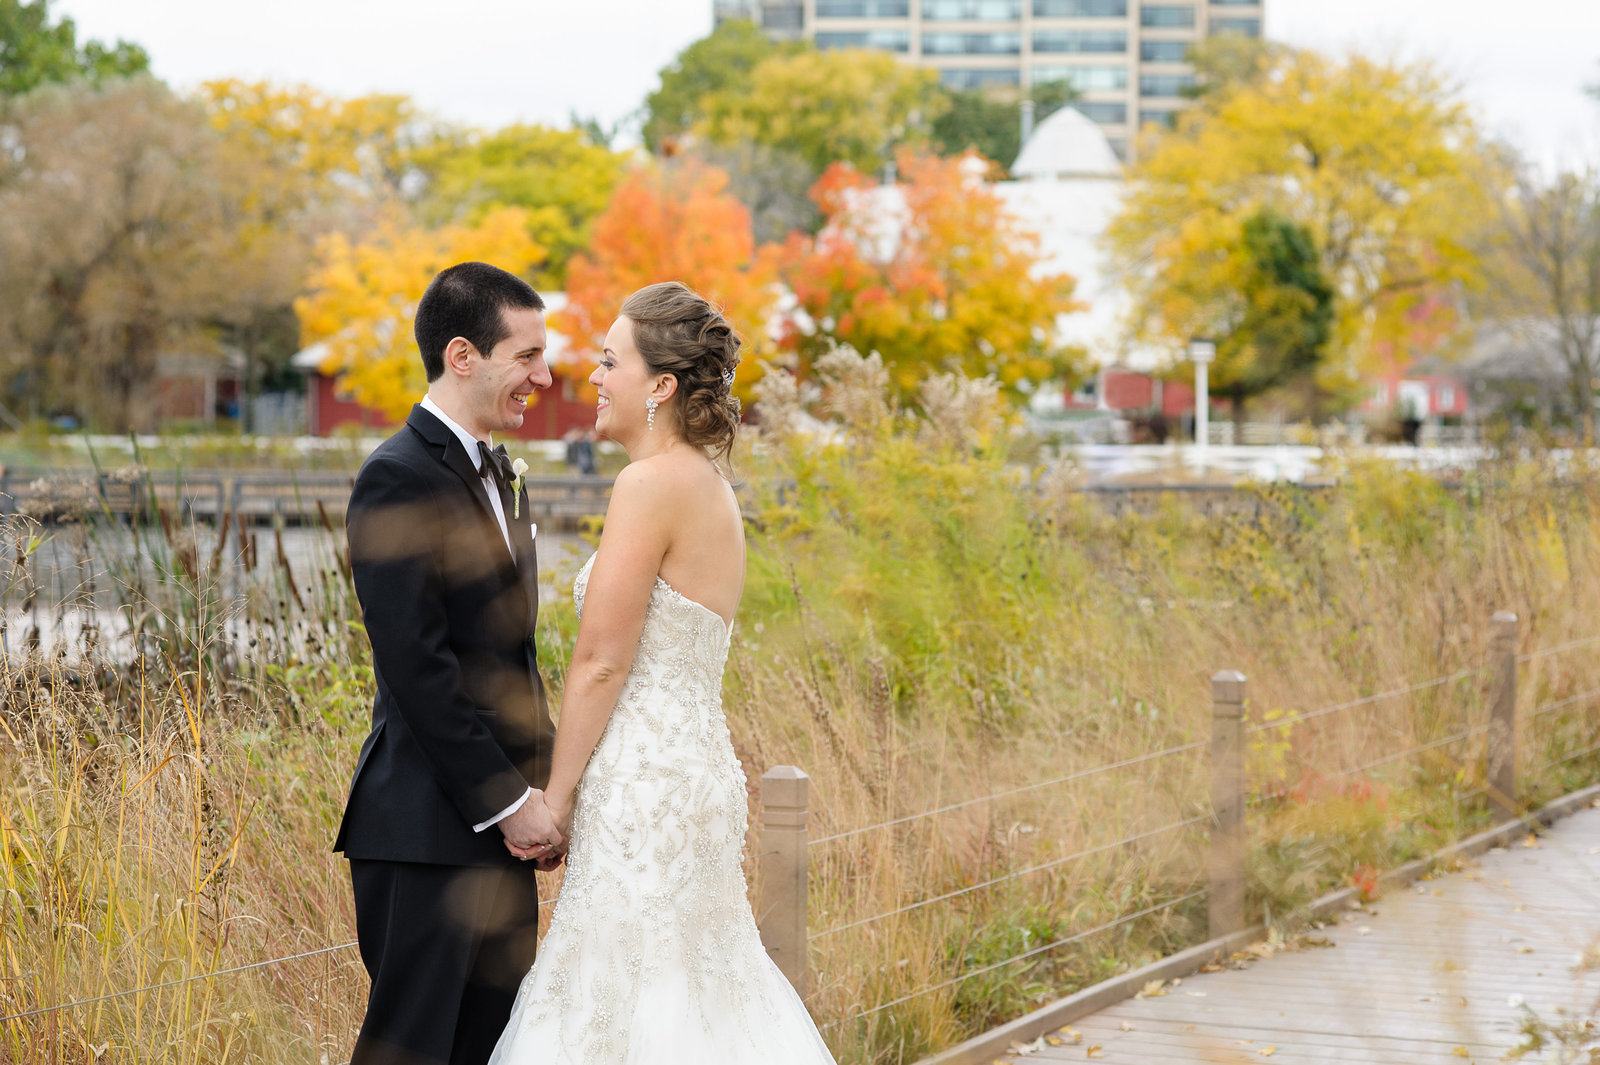 Chicago Wedding Photographer Alaina Bos-6